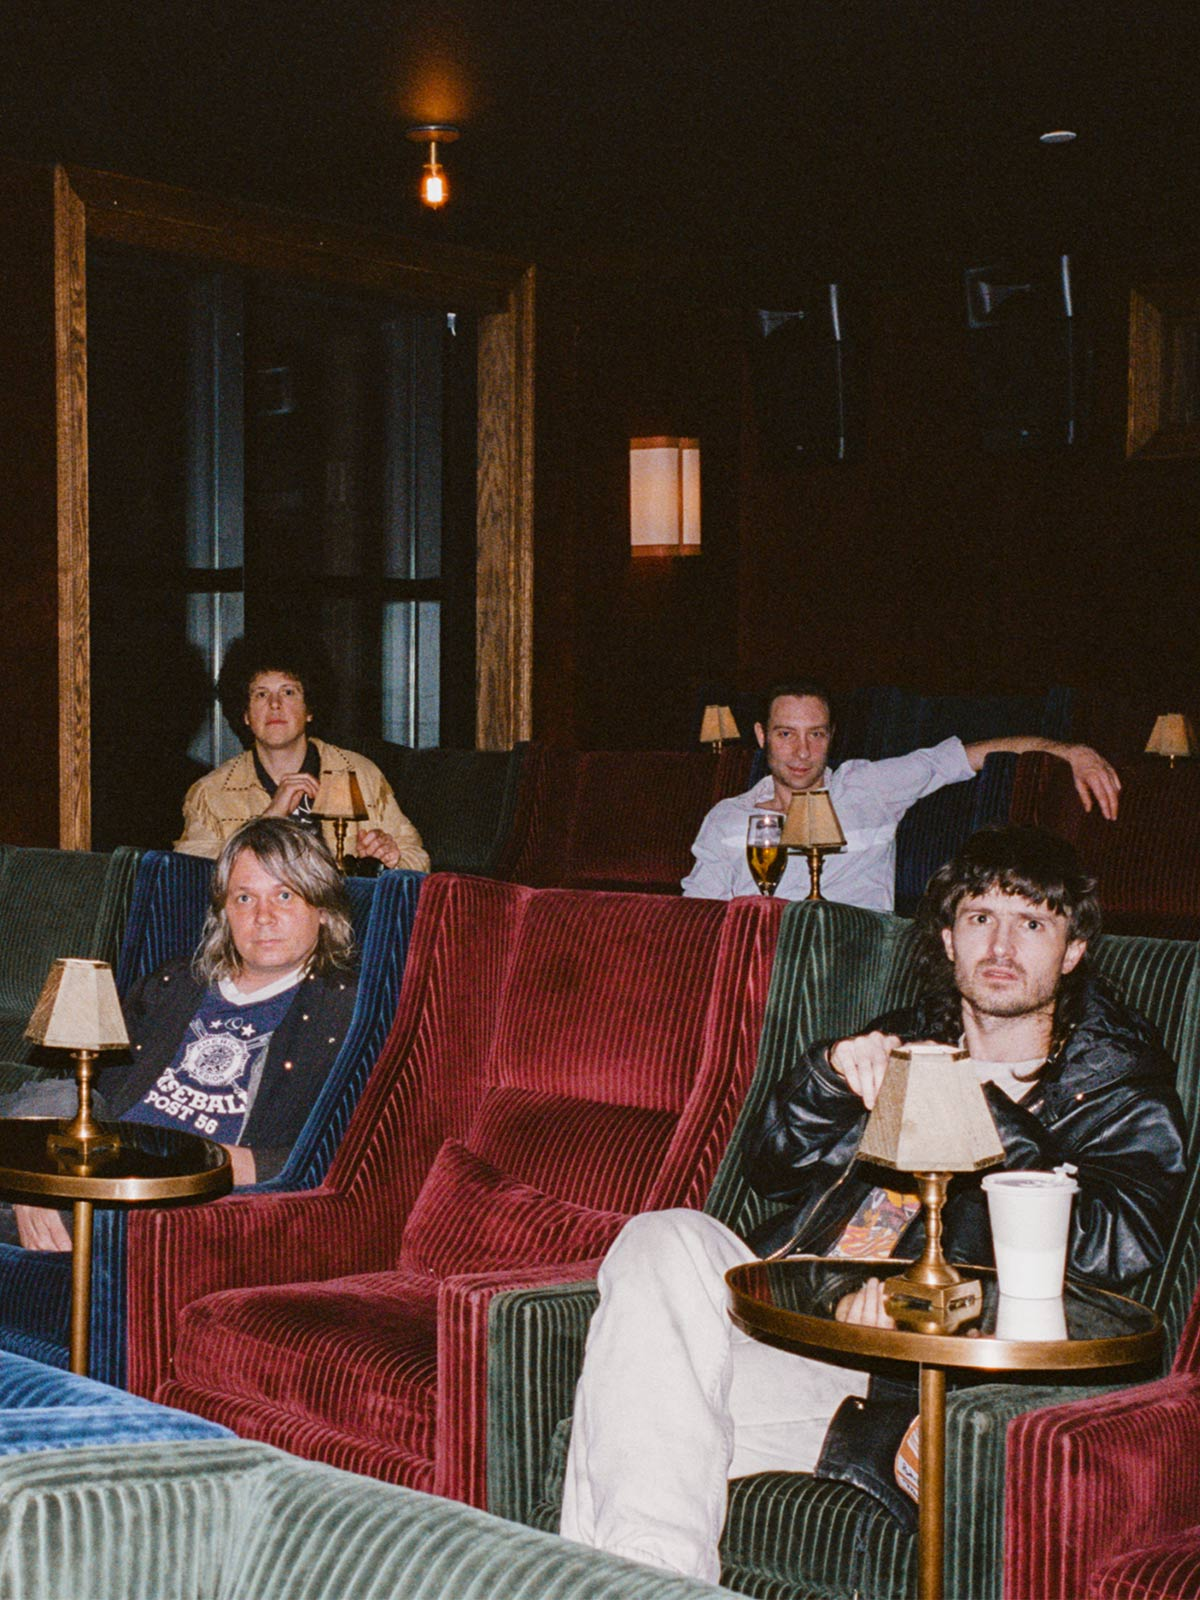 Gospel, postmodern thrifting, and leather daddies: Inside the world of the Black Lips